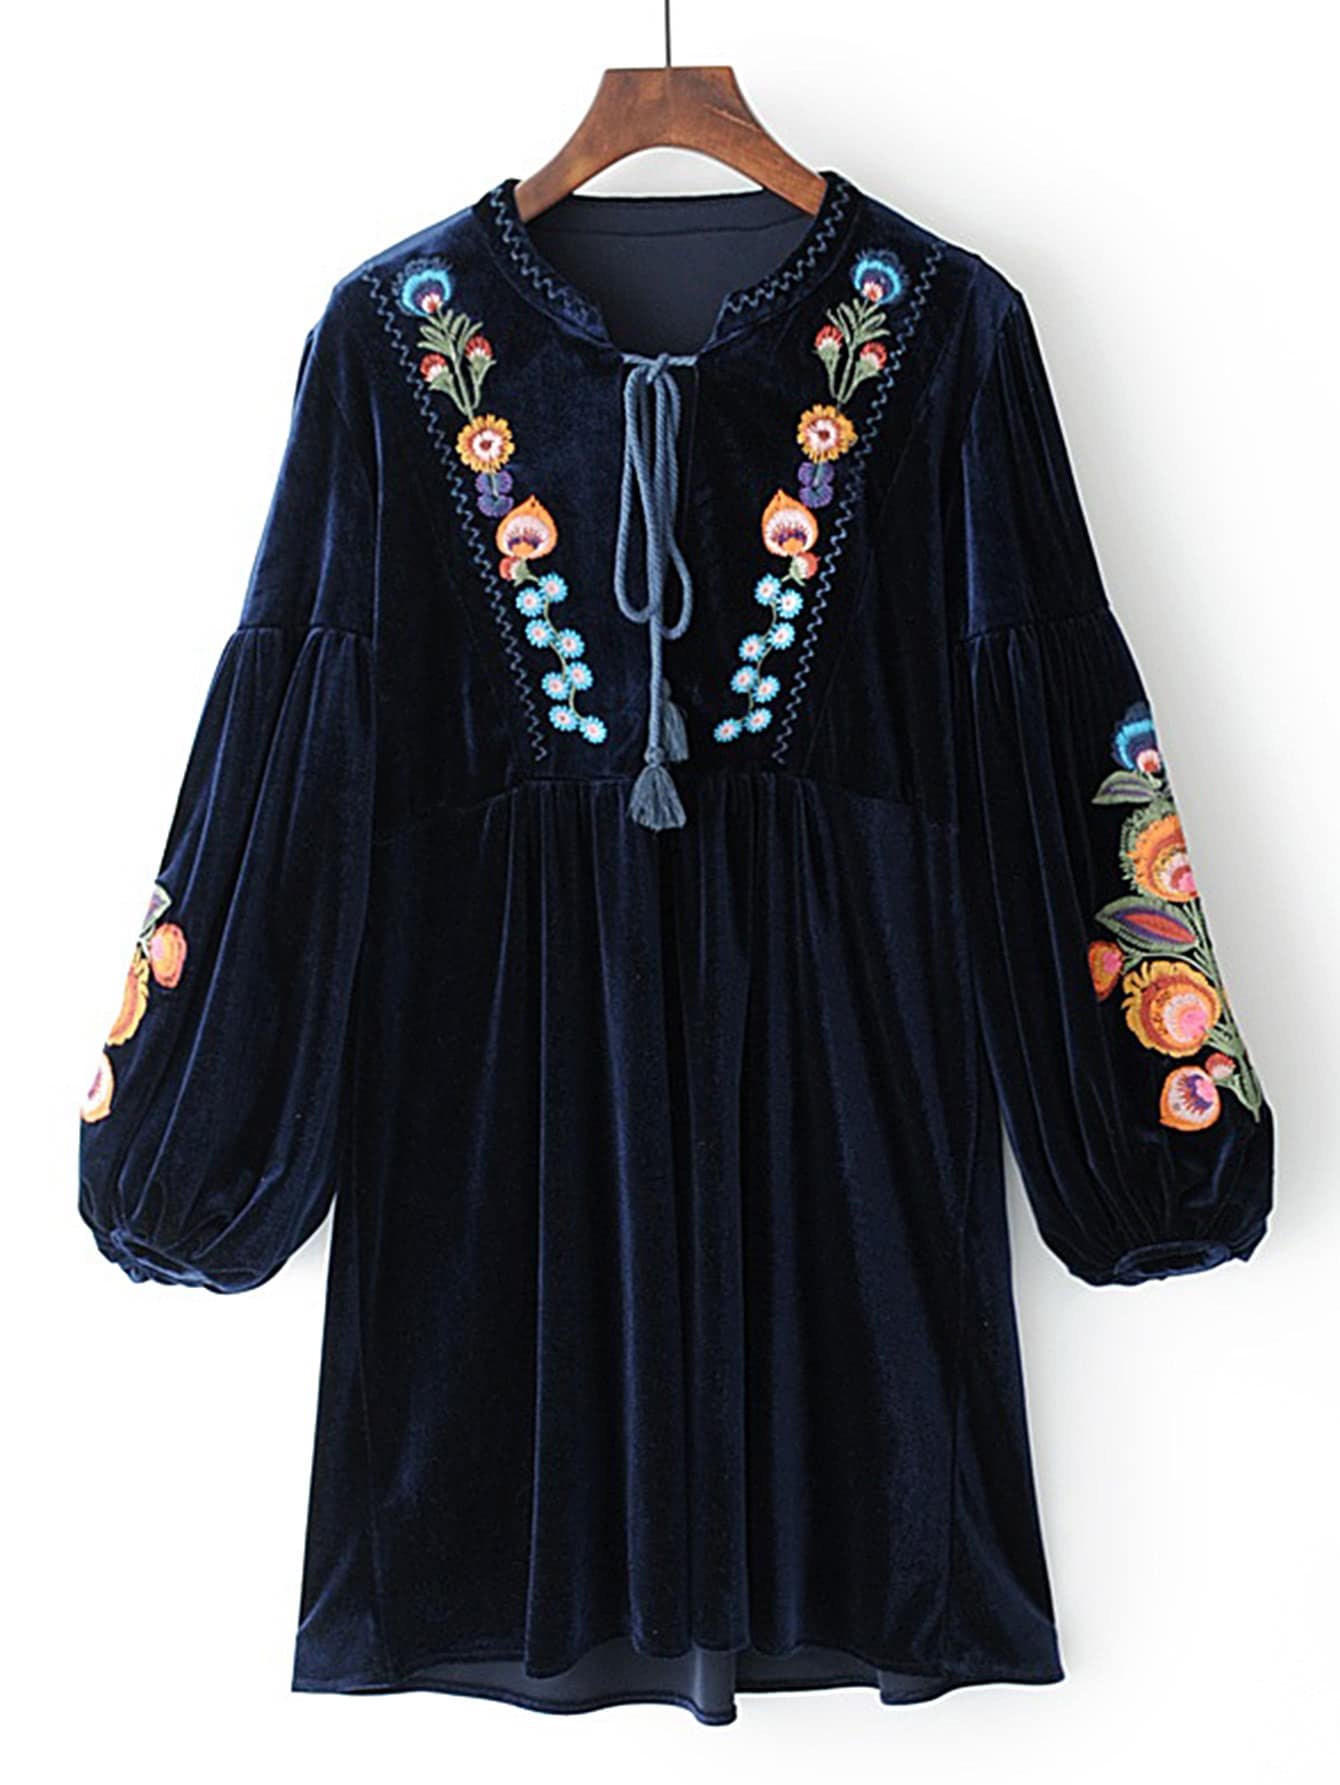 Tassel Tie Neck Drop Shoulder Flower Embroidery Velvet Dress long drop shoulder sweatshirt dress with tassel